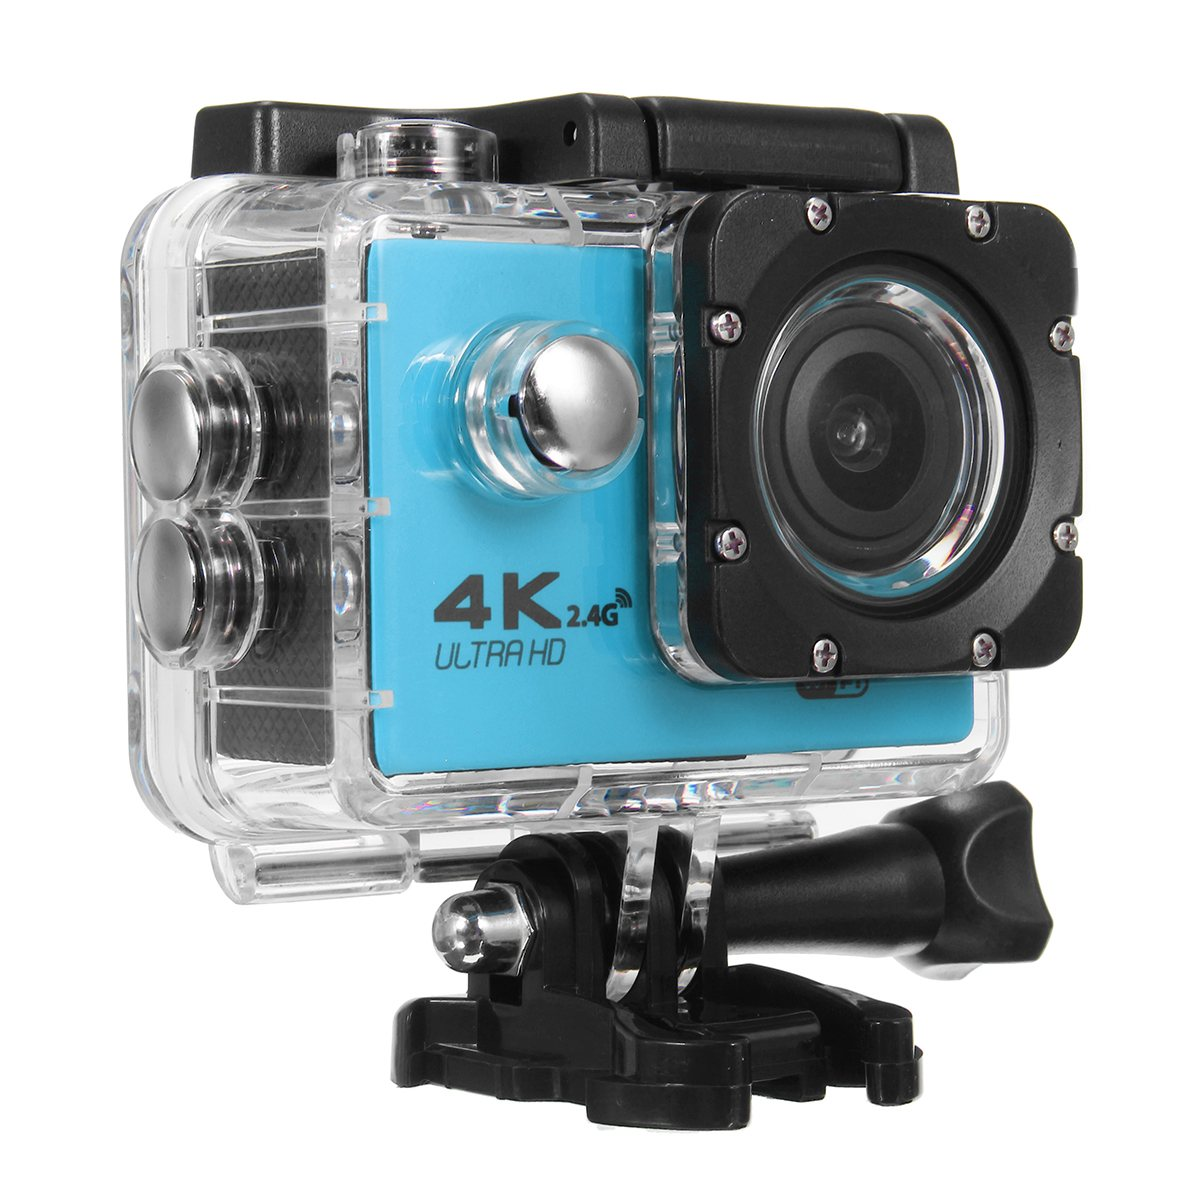 Hot Selling pro underwater waterproof Action Camera F60R Ultra HD 4K /30fps WiFi 2.0 170D go Helmet Cam Sport Consumer Camera ...